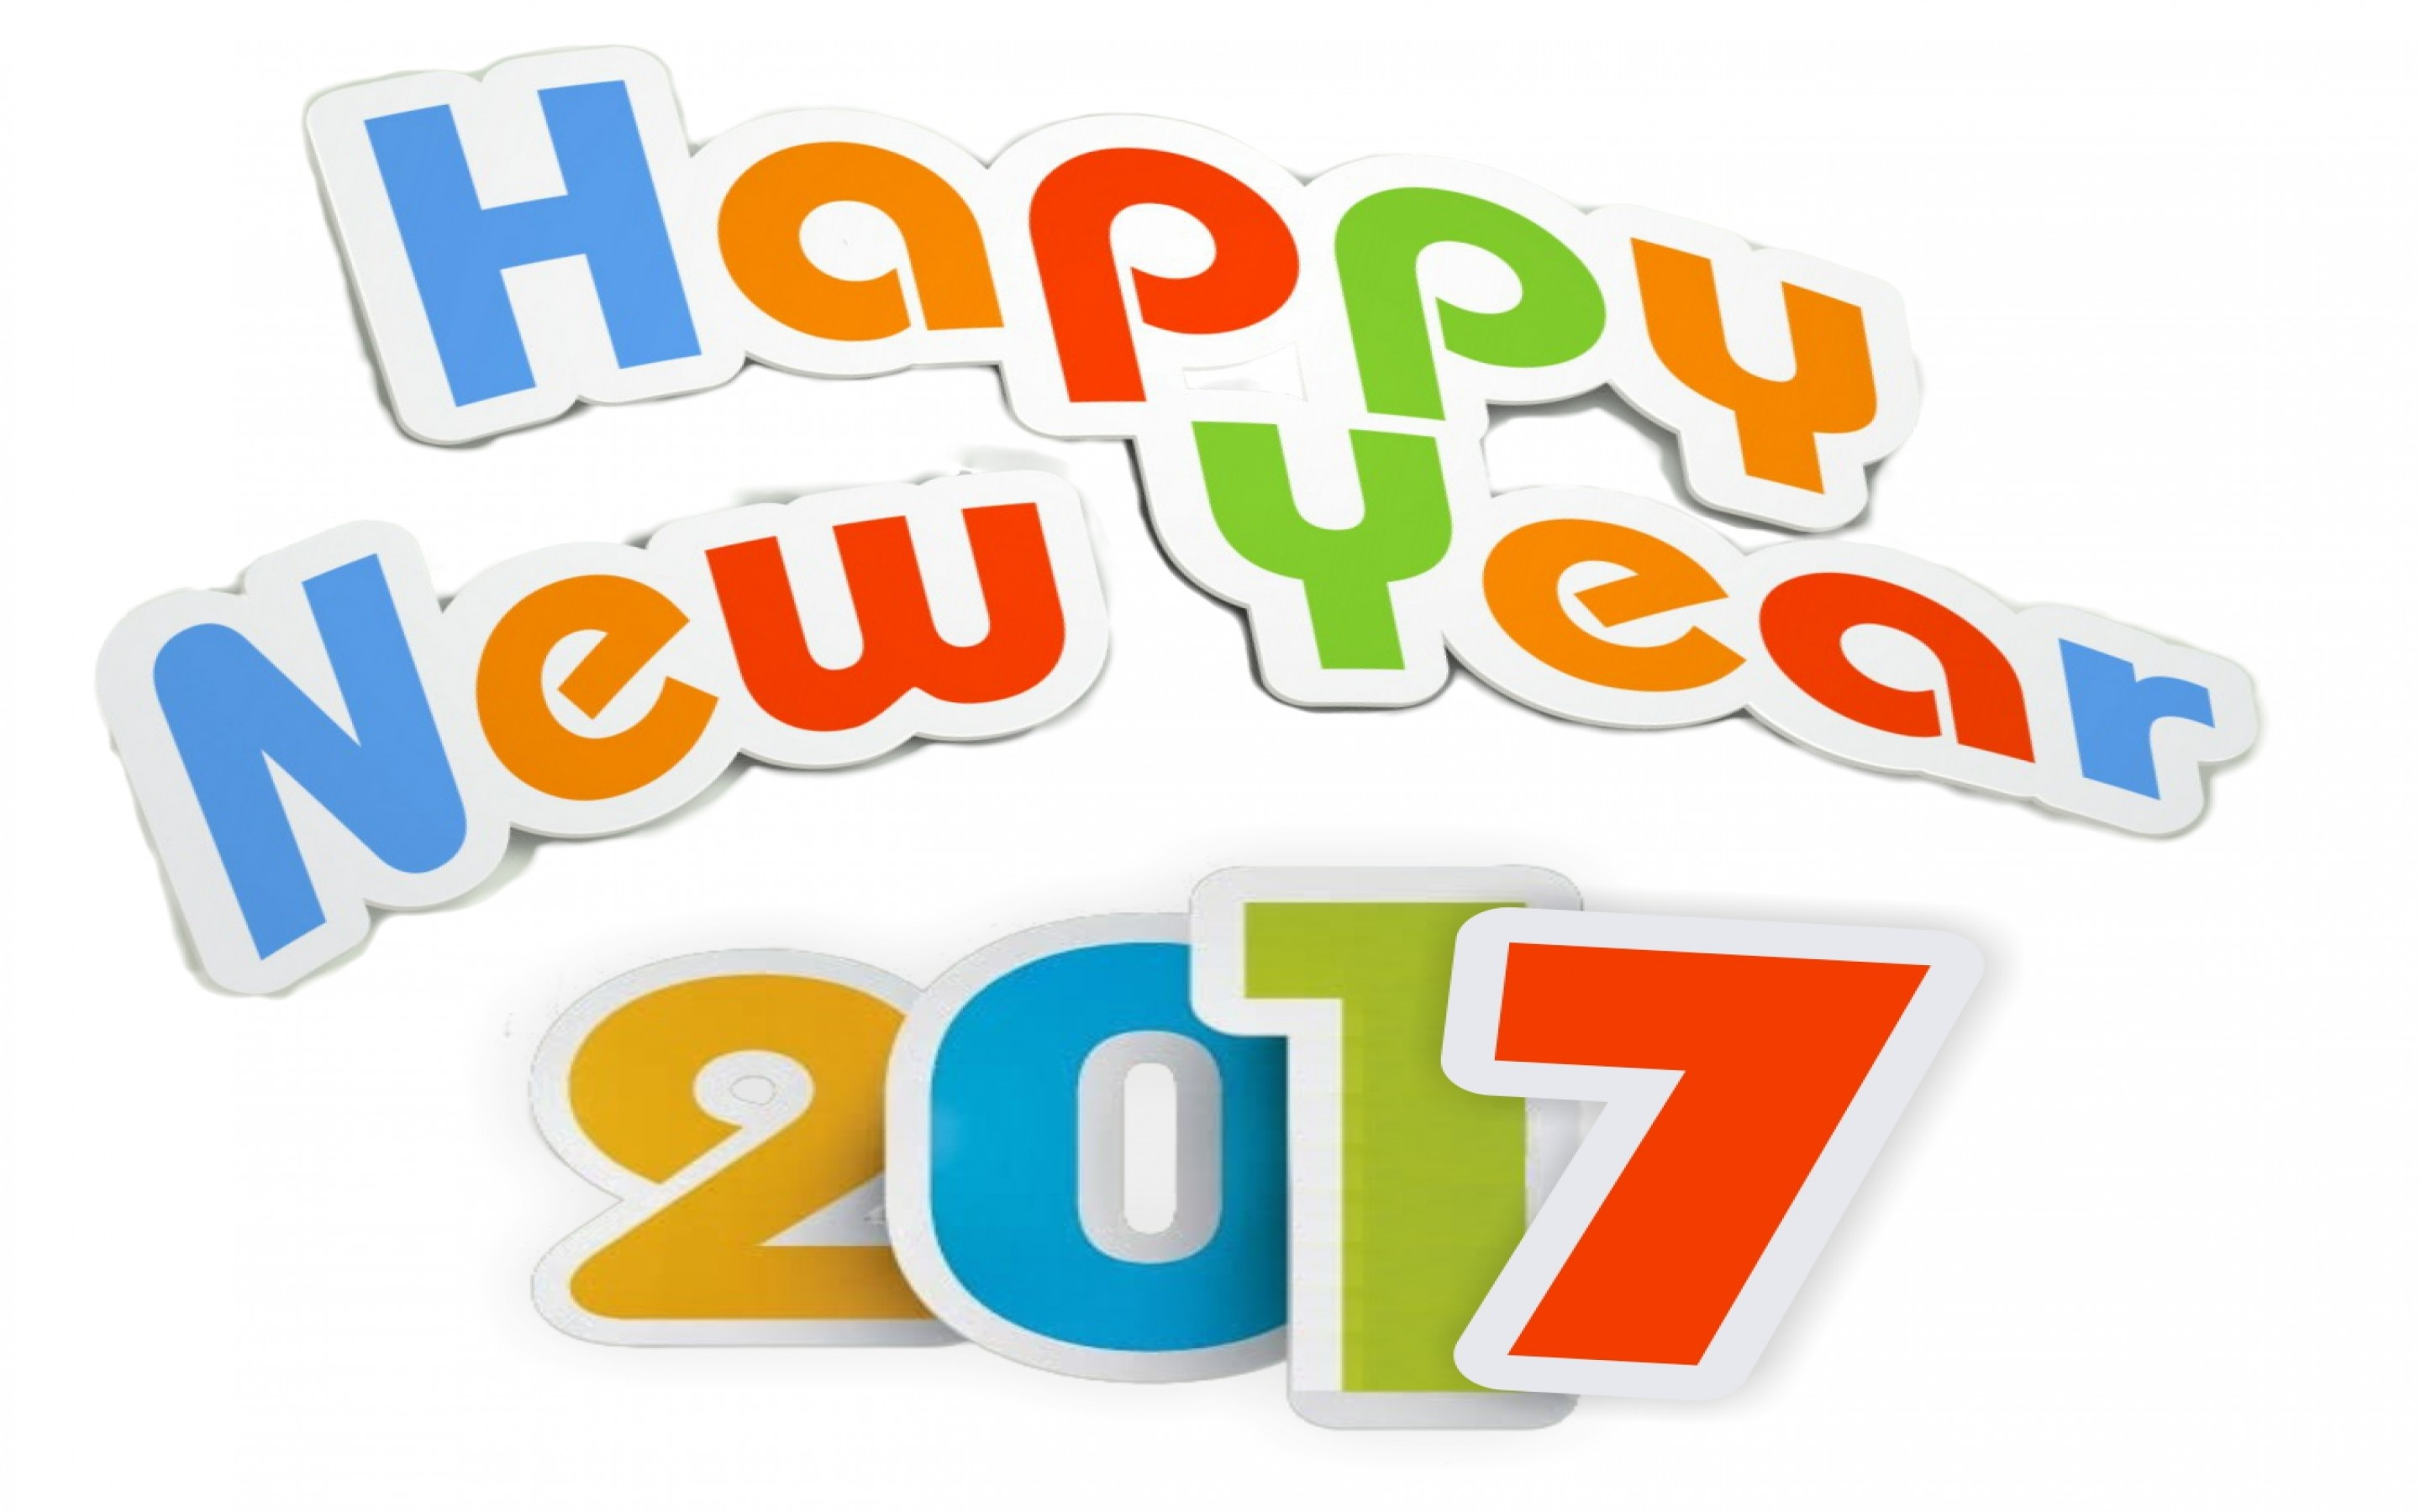 2017 clipart new years day.  happy year transparent